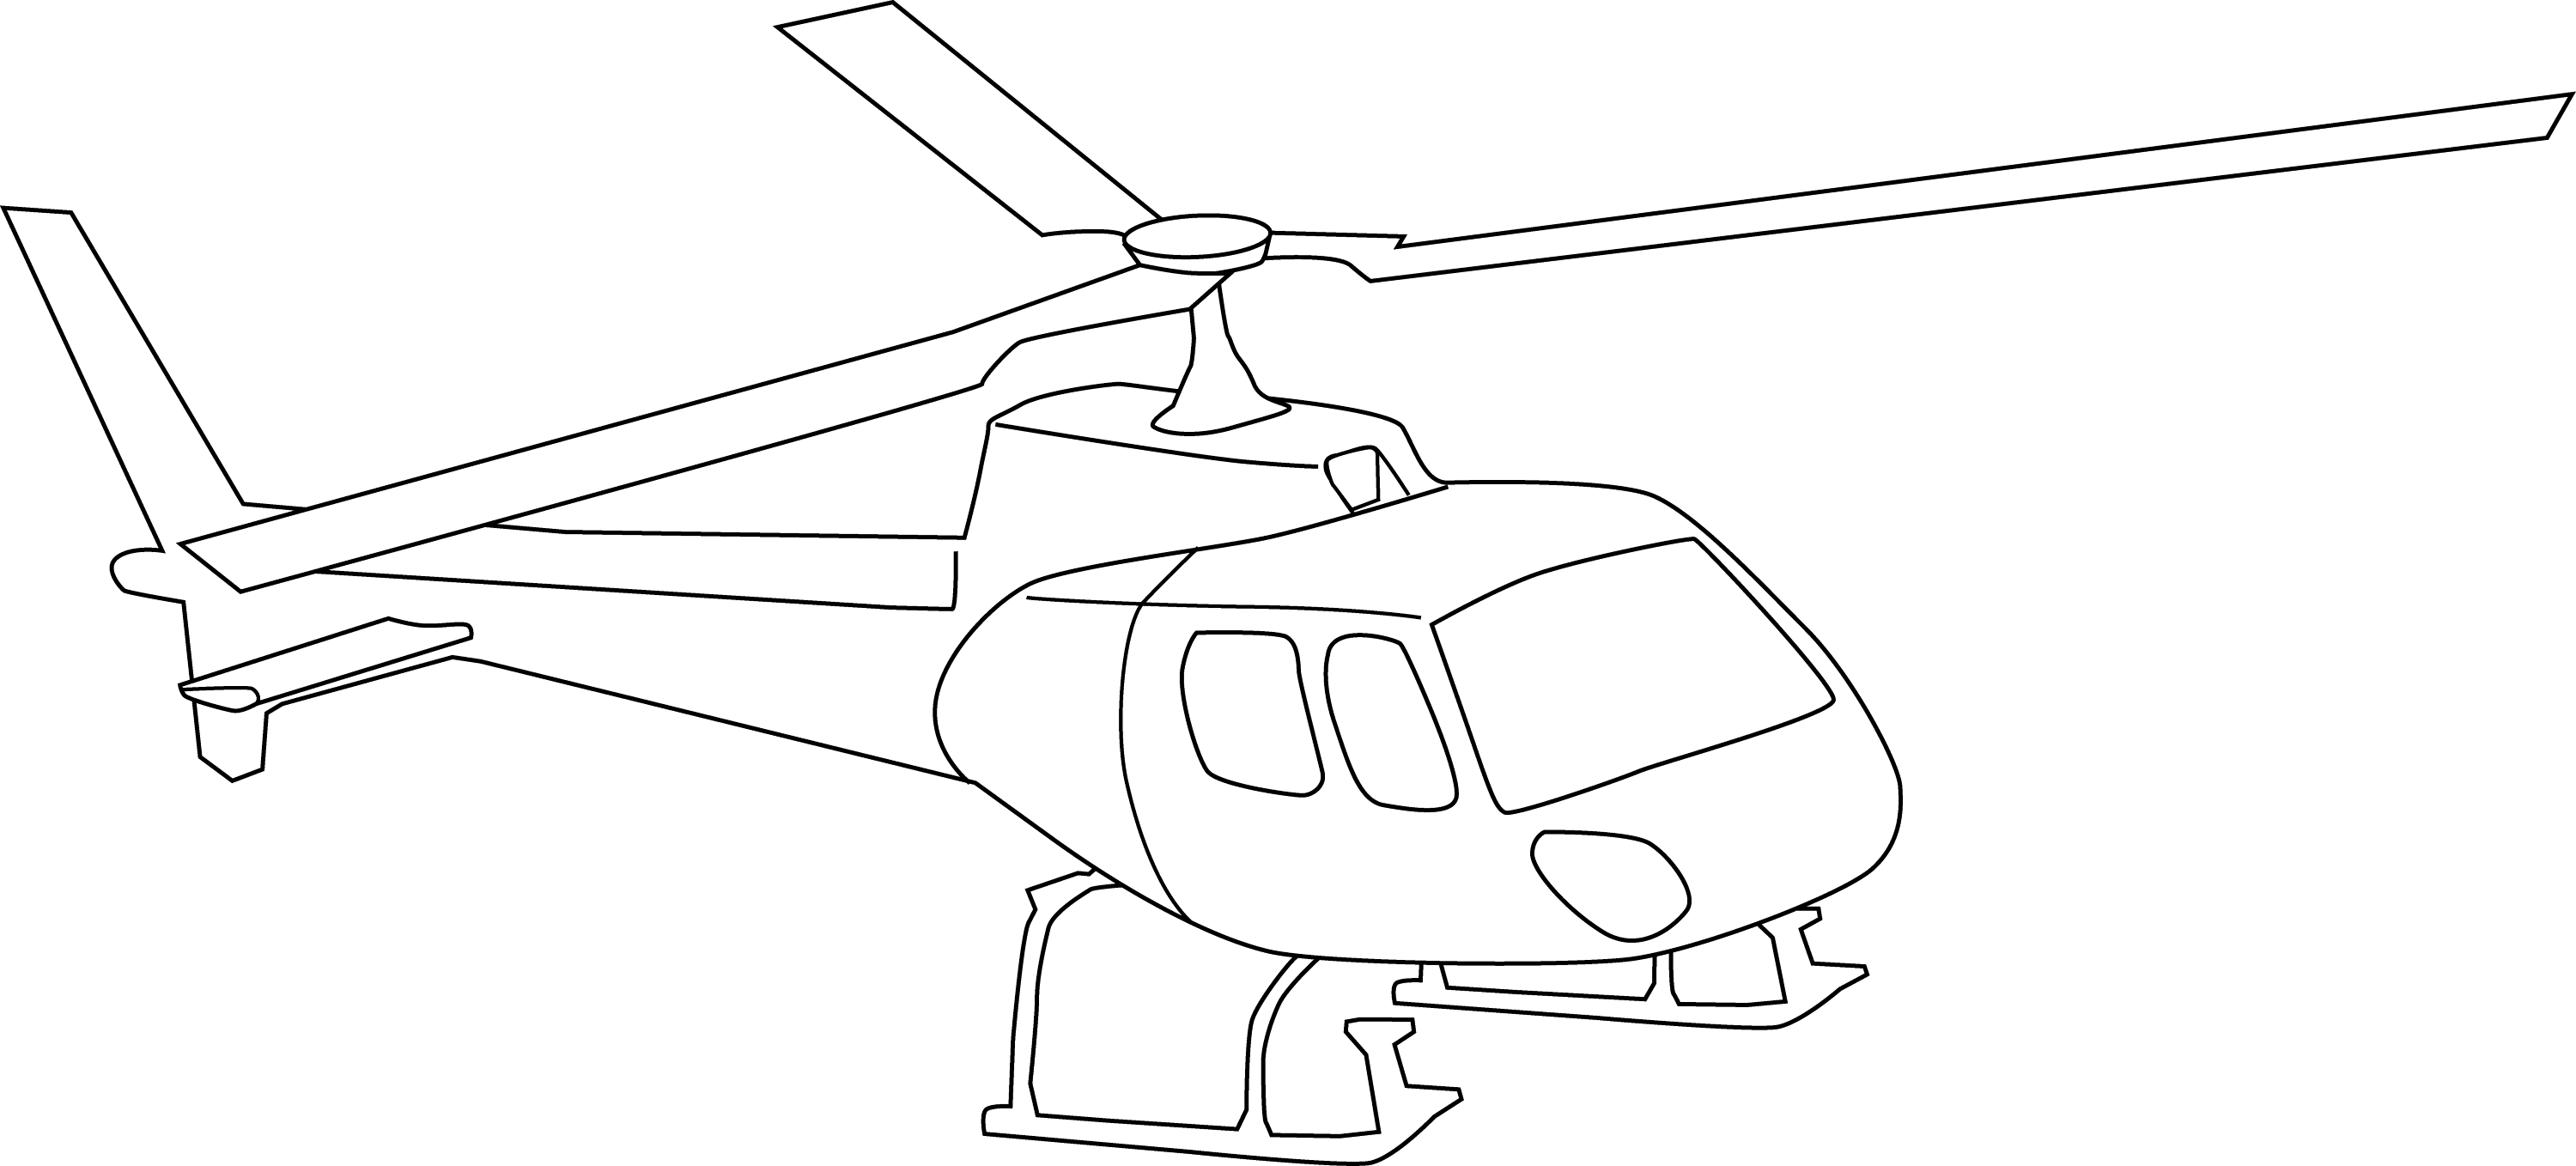 helicopter colouring pictures helicopter coloring page free clip art helicopter pictures colouring